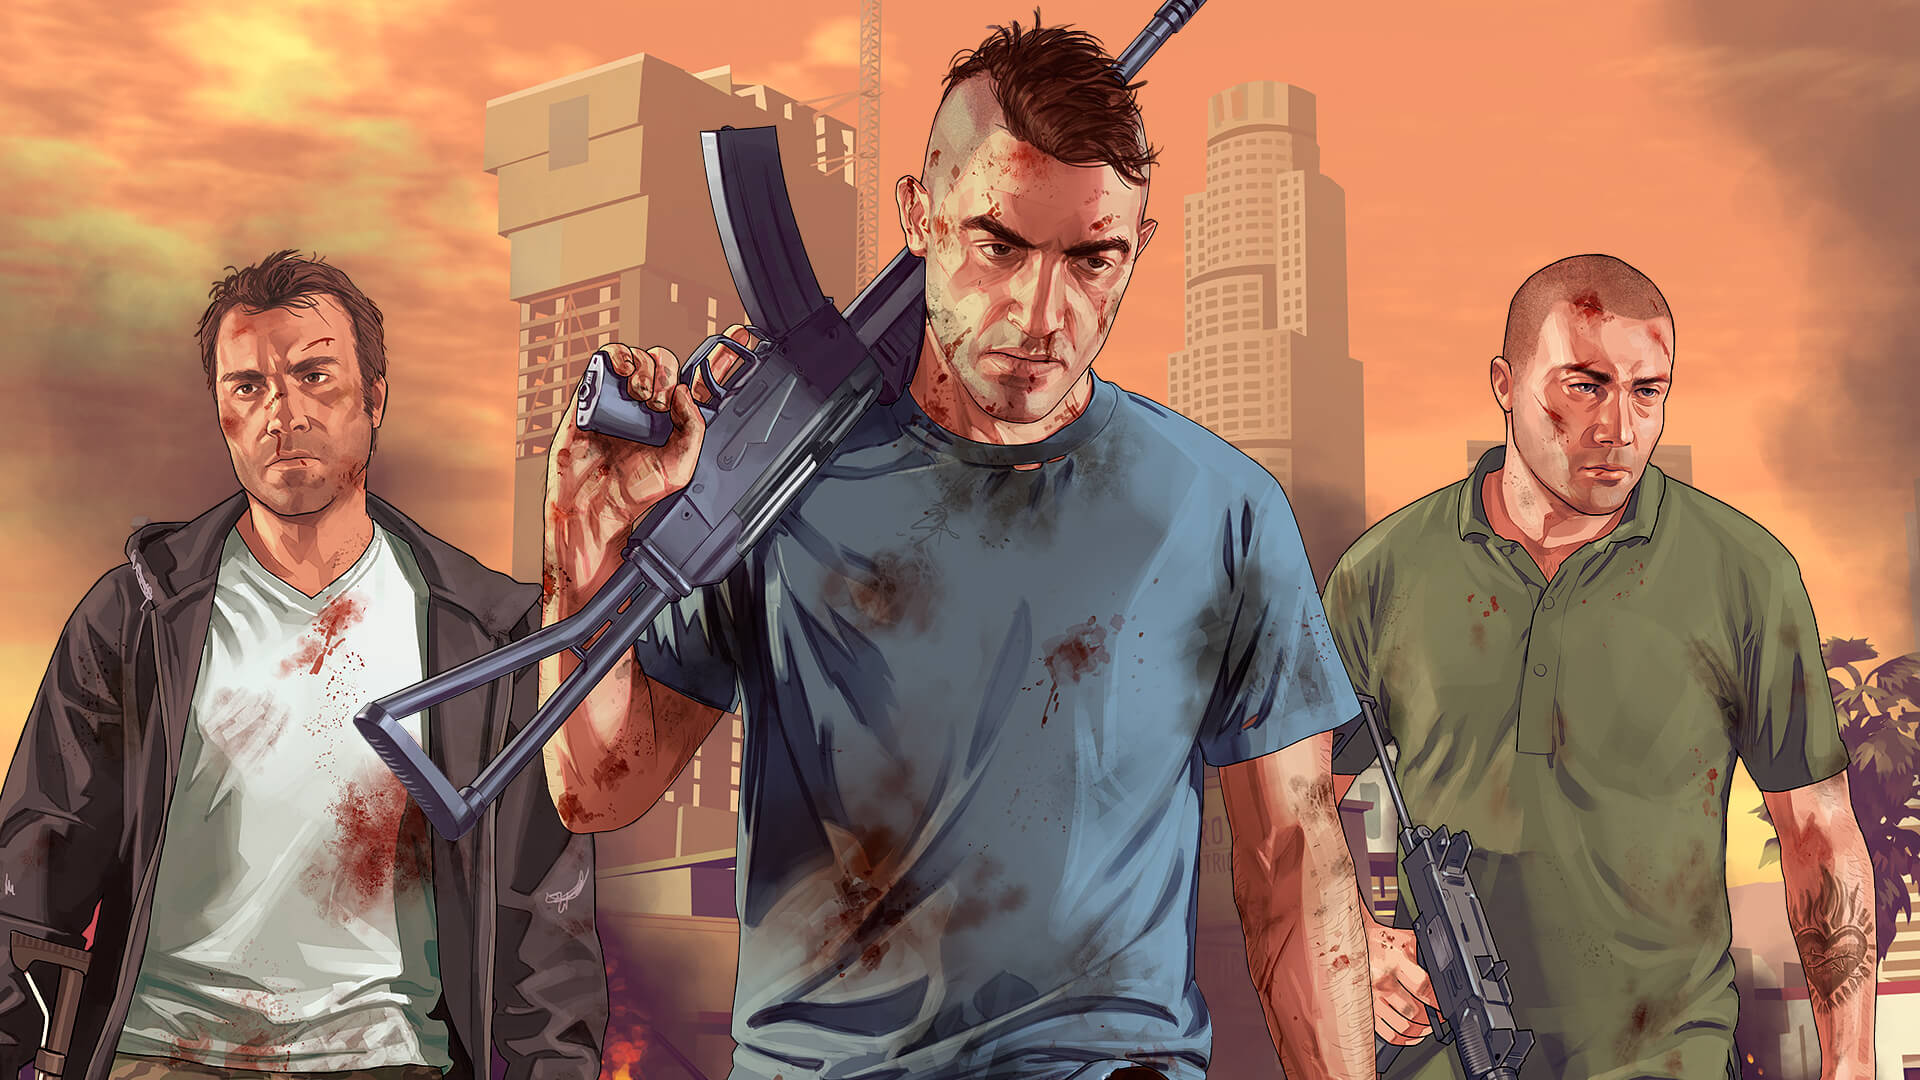 GTA VI In Active Development, According To Tax Claims